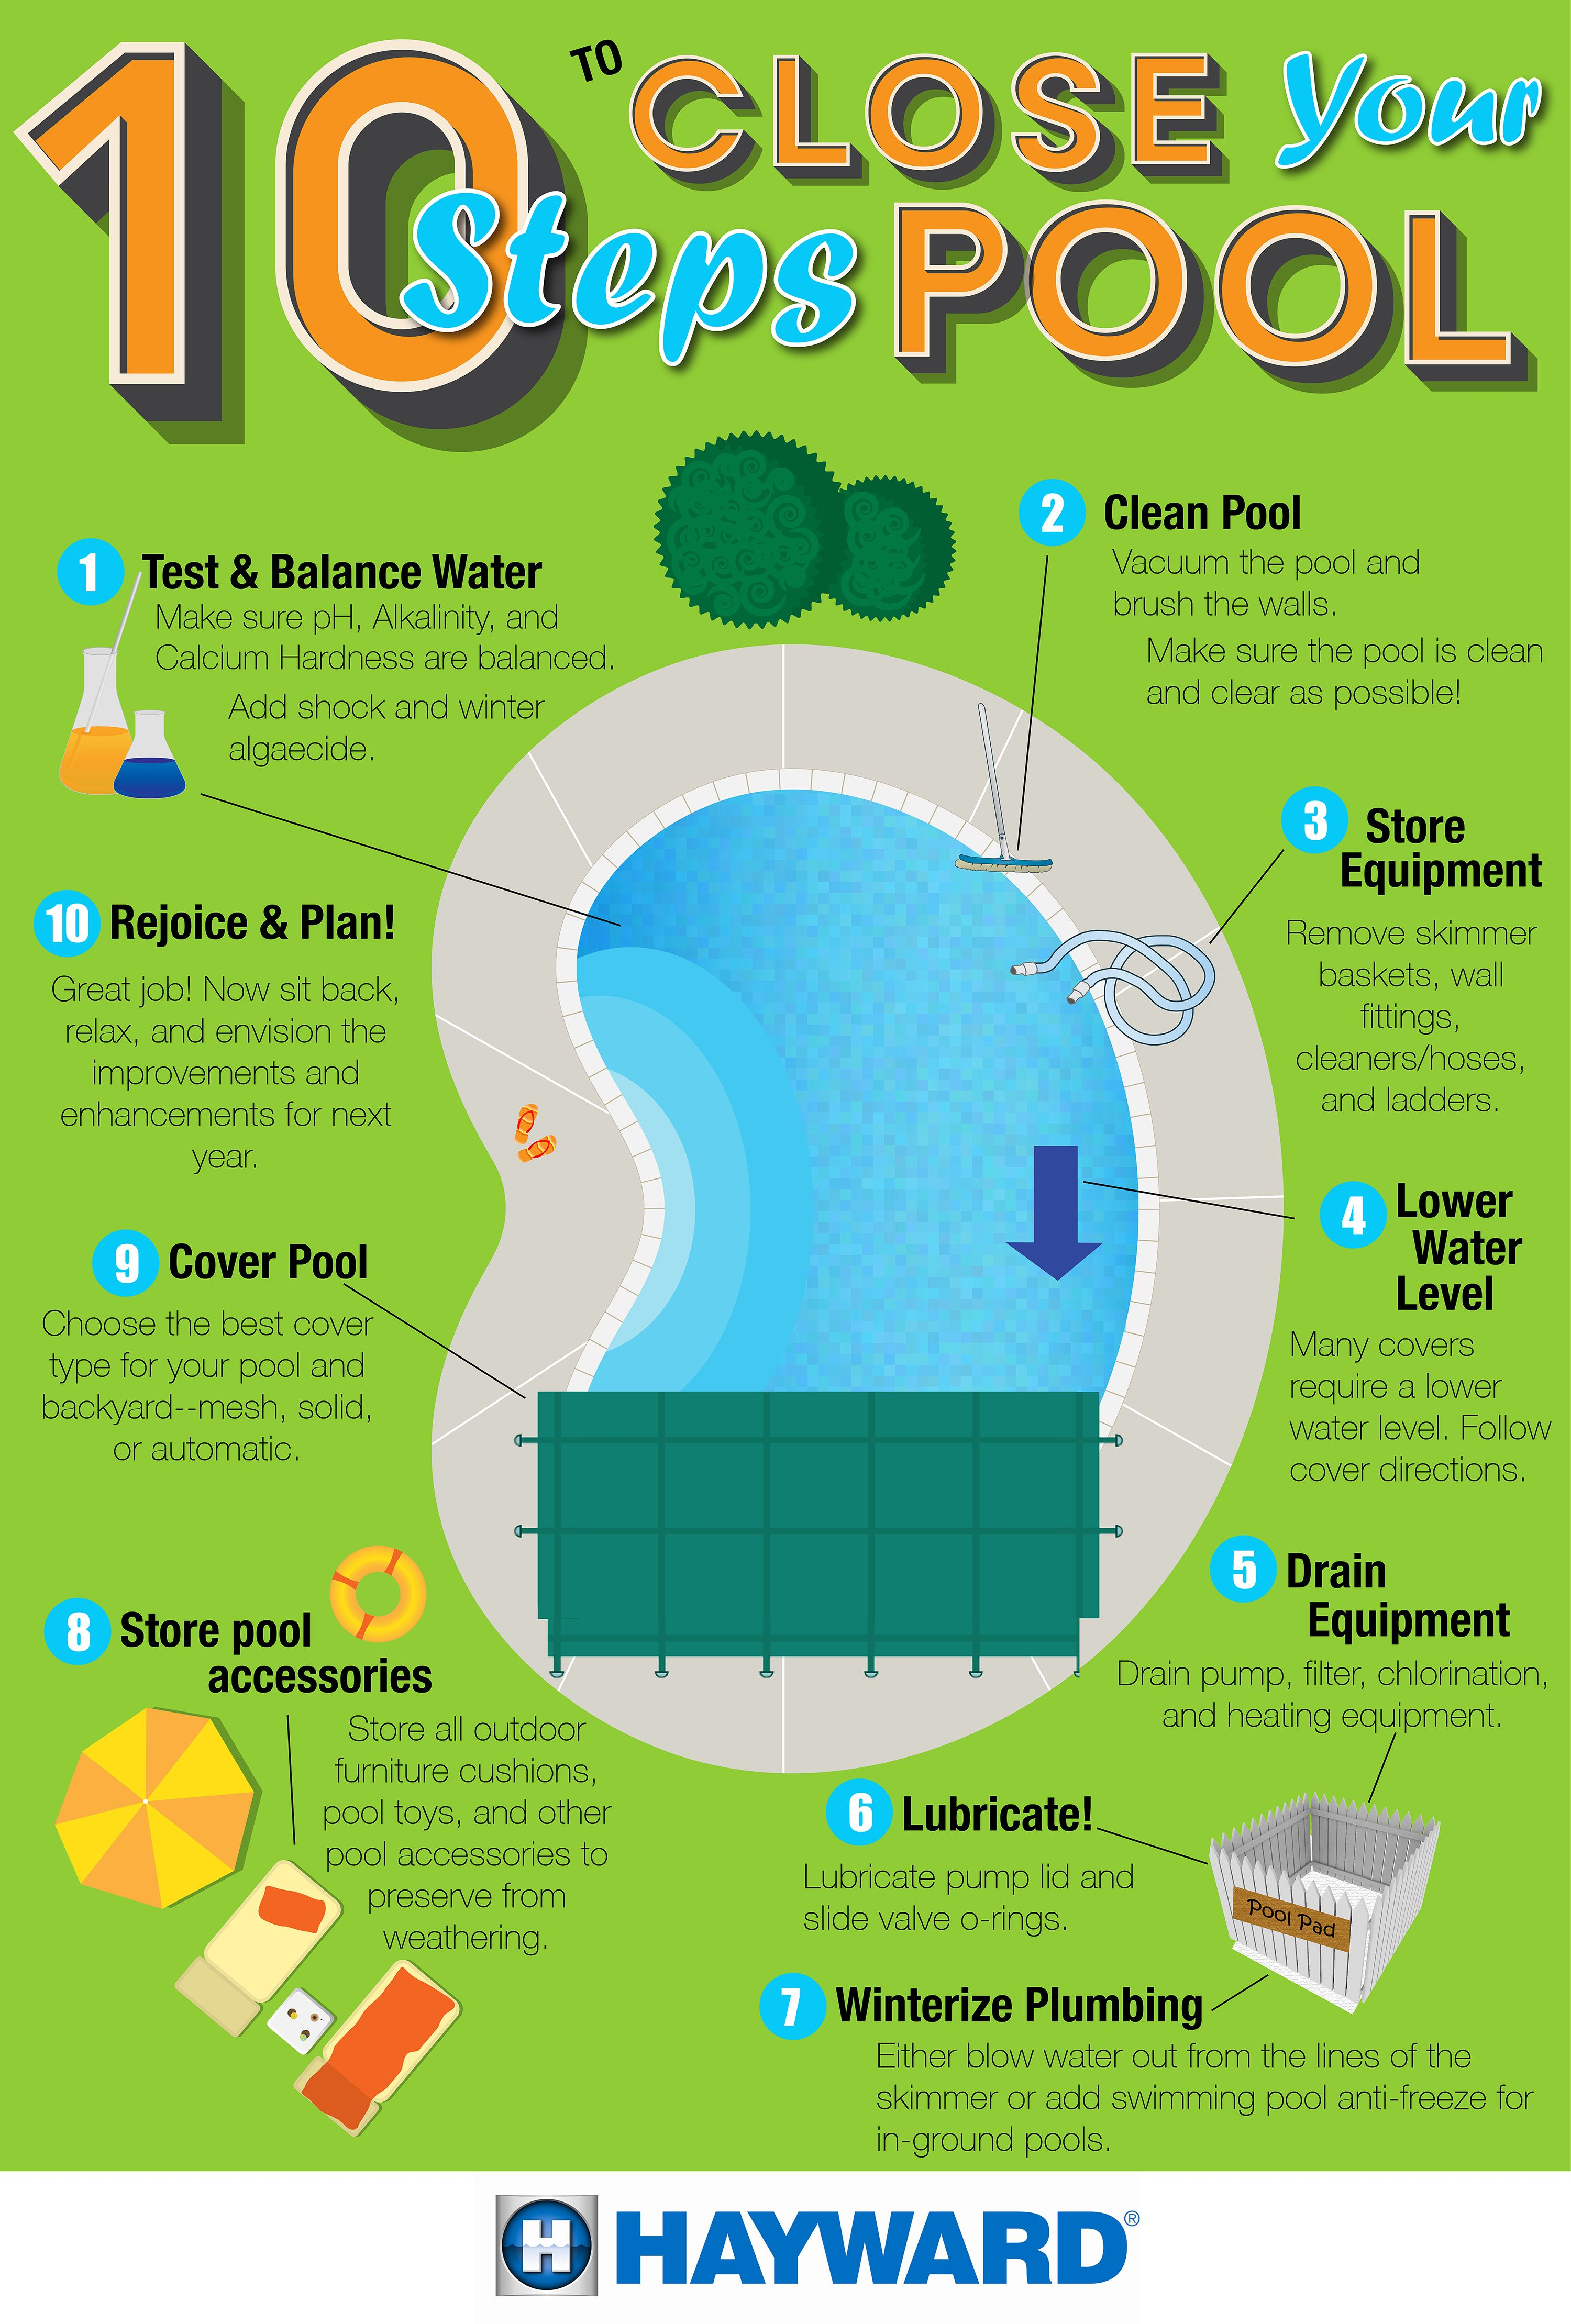 It S Closing Time In Many Parts Of The Country Check Out These 10 Tips For Closing Your Pool Pool Life Swimming Pool Maintenance Pool Care